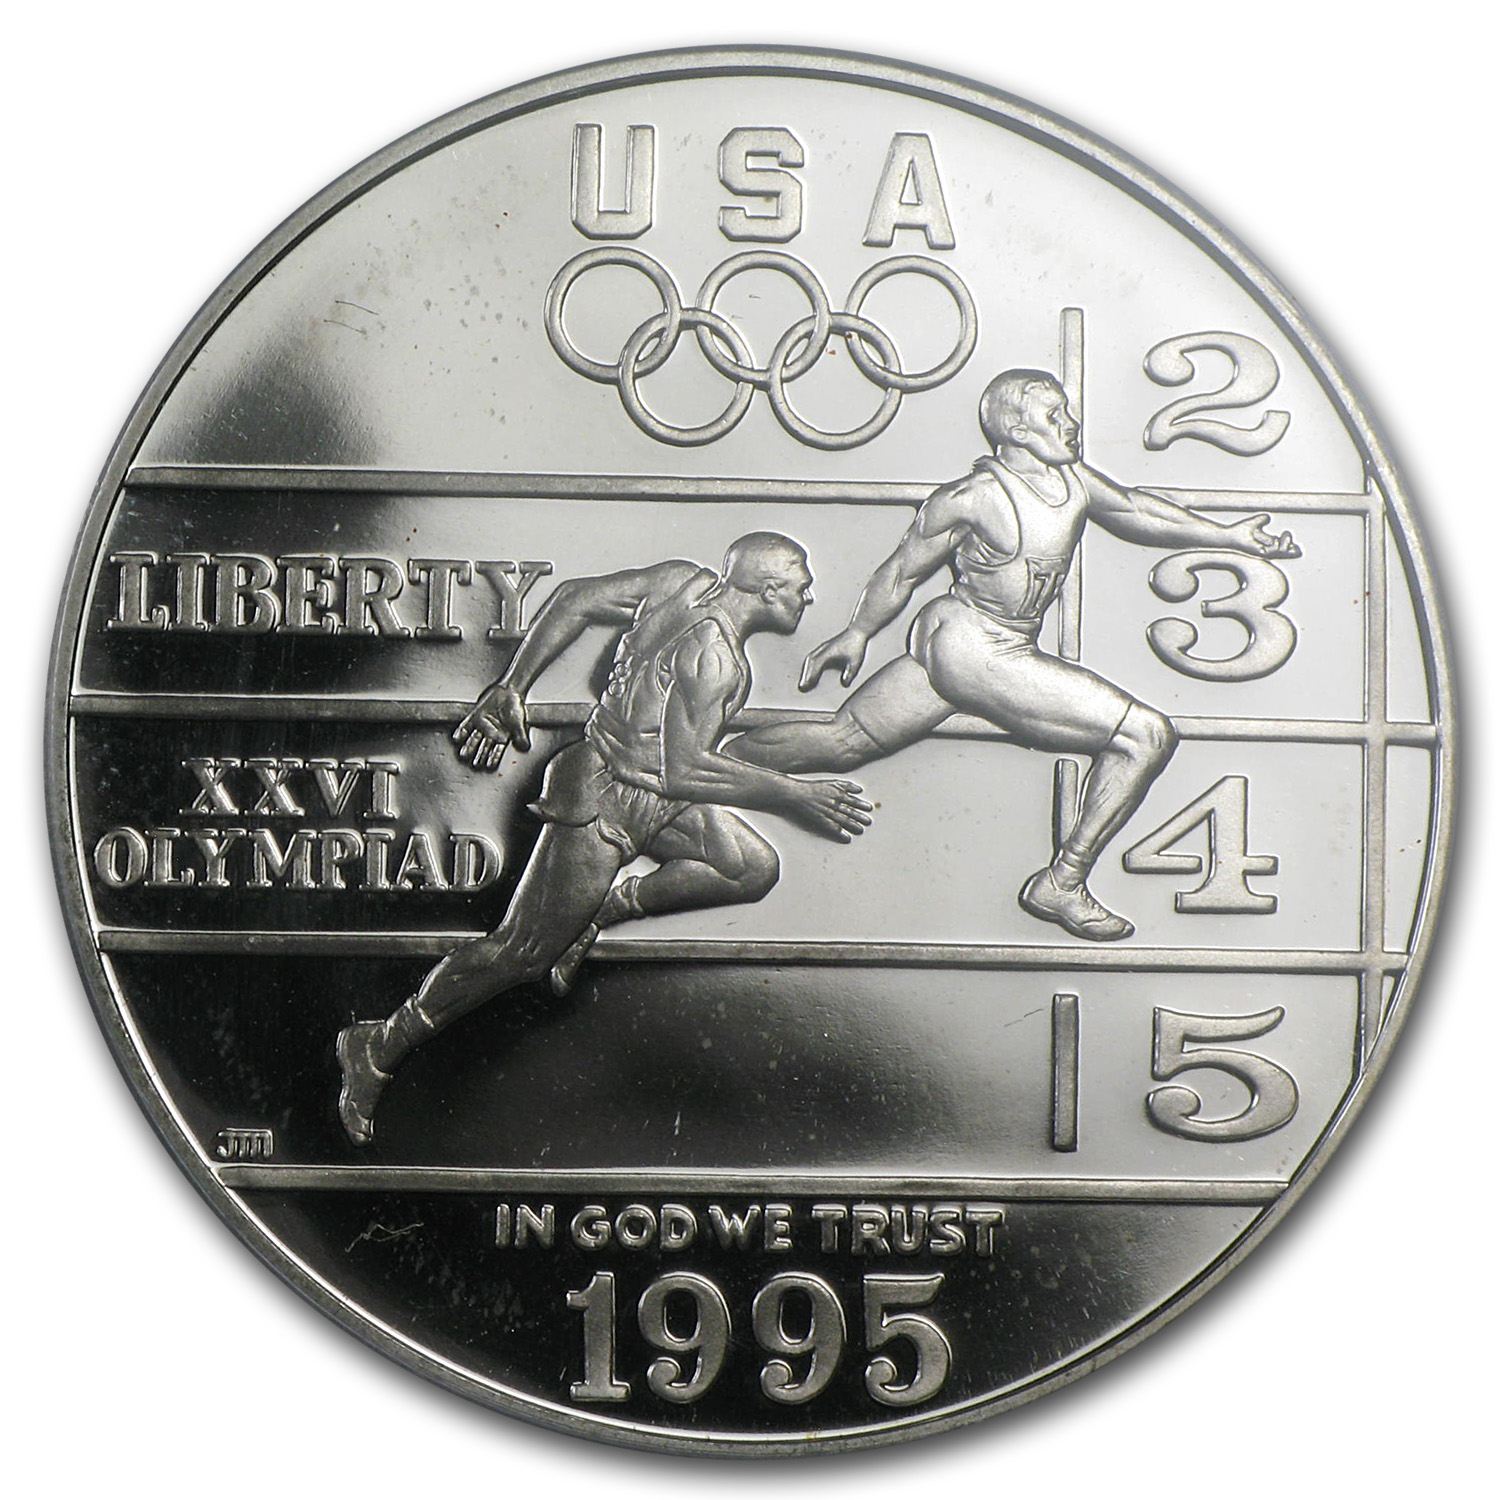 1995-P Olympic Track and Field $1 Silver Commem - PR-69 DCAM PCGS